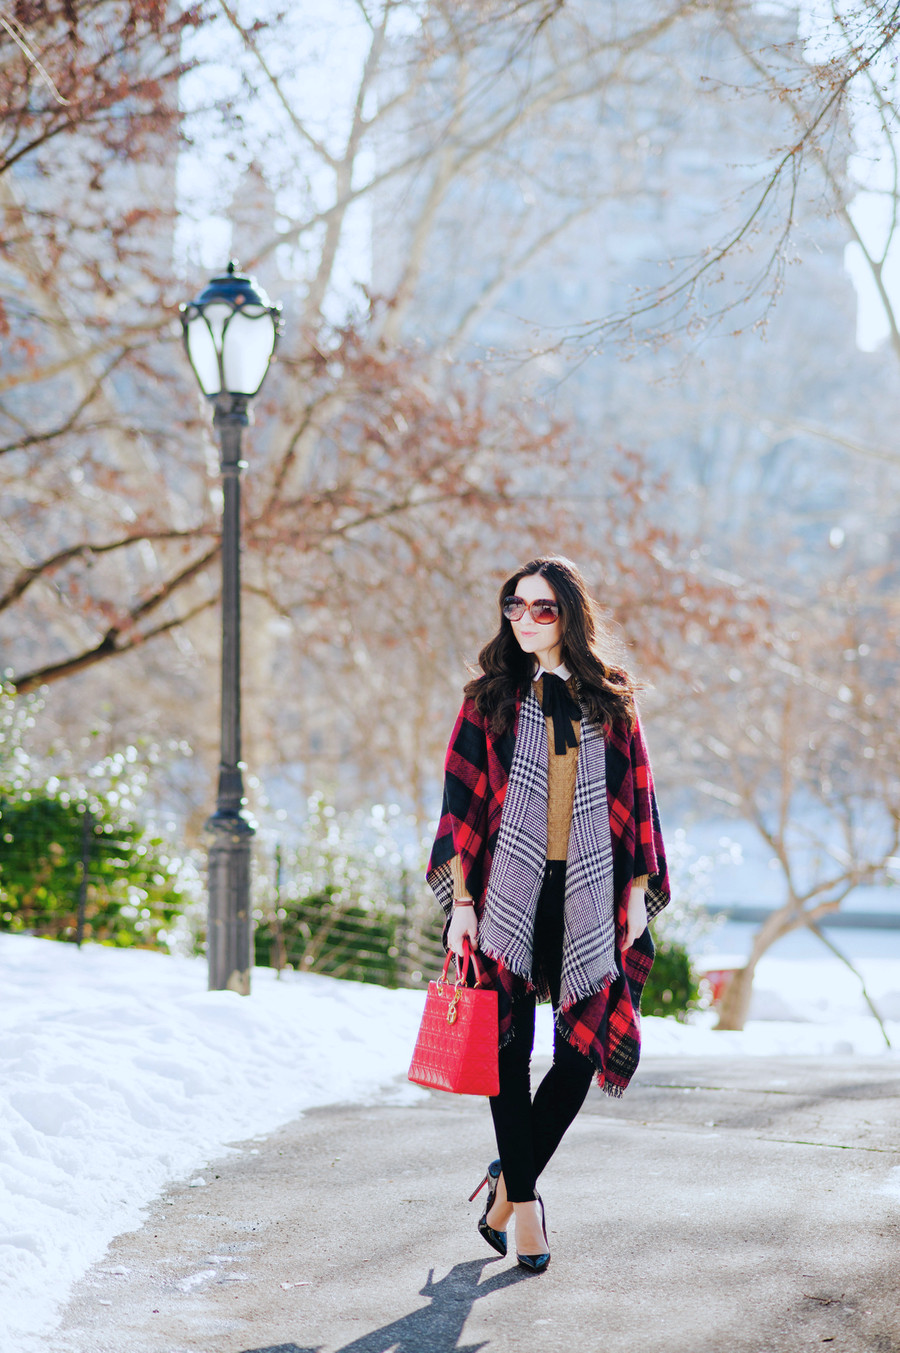 MODENA 'Double Plaid' Reversible Cape, Reversible Cape, Houndstooth Cape, Plaid Cape, Modena Cape, H&M Crepe Blouse, H&M Bow Blouse, Lady Dior Large, Lady Dior Cannage, Lady Dior Red Purse, J.Crew Collection Cashmere Cable Sweater with Pom Poms, Cashmere Sweater in Camel, Camel Sweater with Pom Poms, Parker Smith Jeans Ava Skinny Jean in Eternal Black,  Daniel Wellington St. Mawes 26 mm in  Rose gold